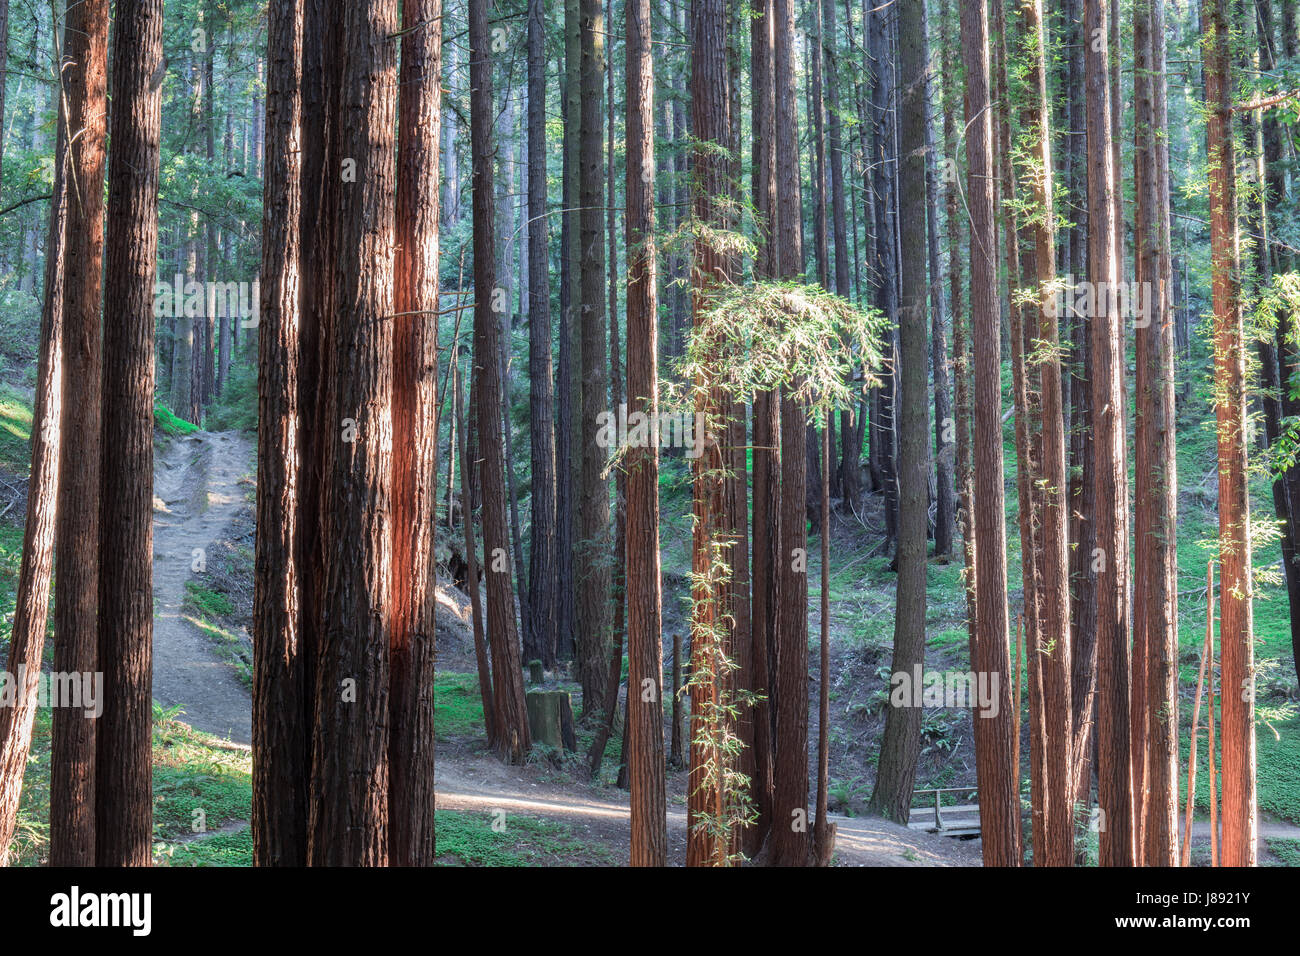 Sunset Lights on Redwood Trees. - Stock Image